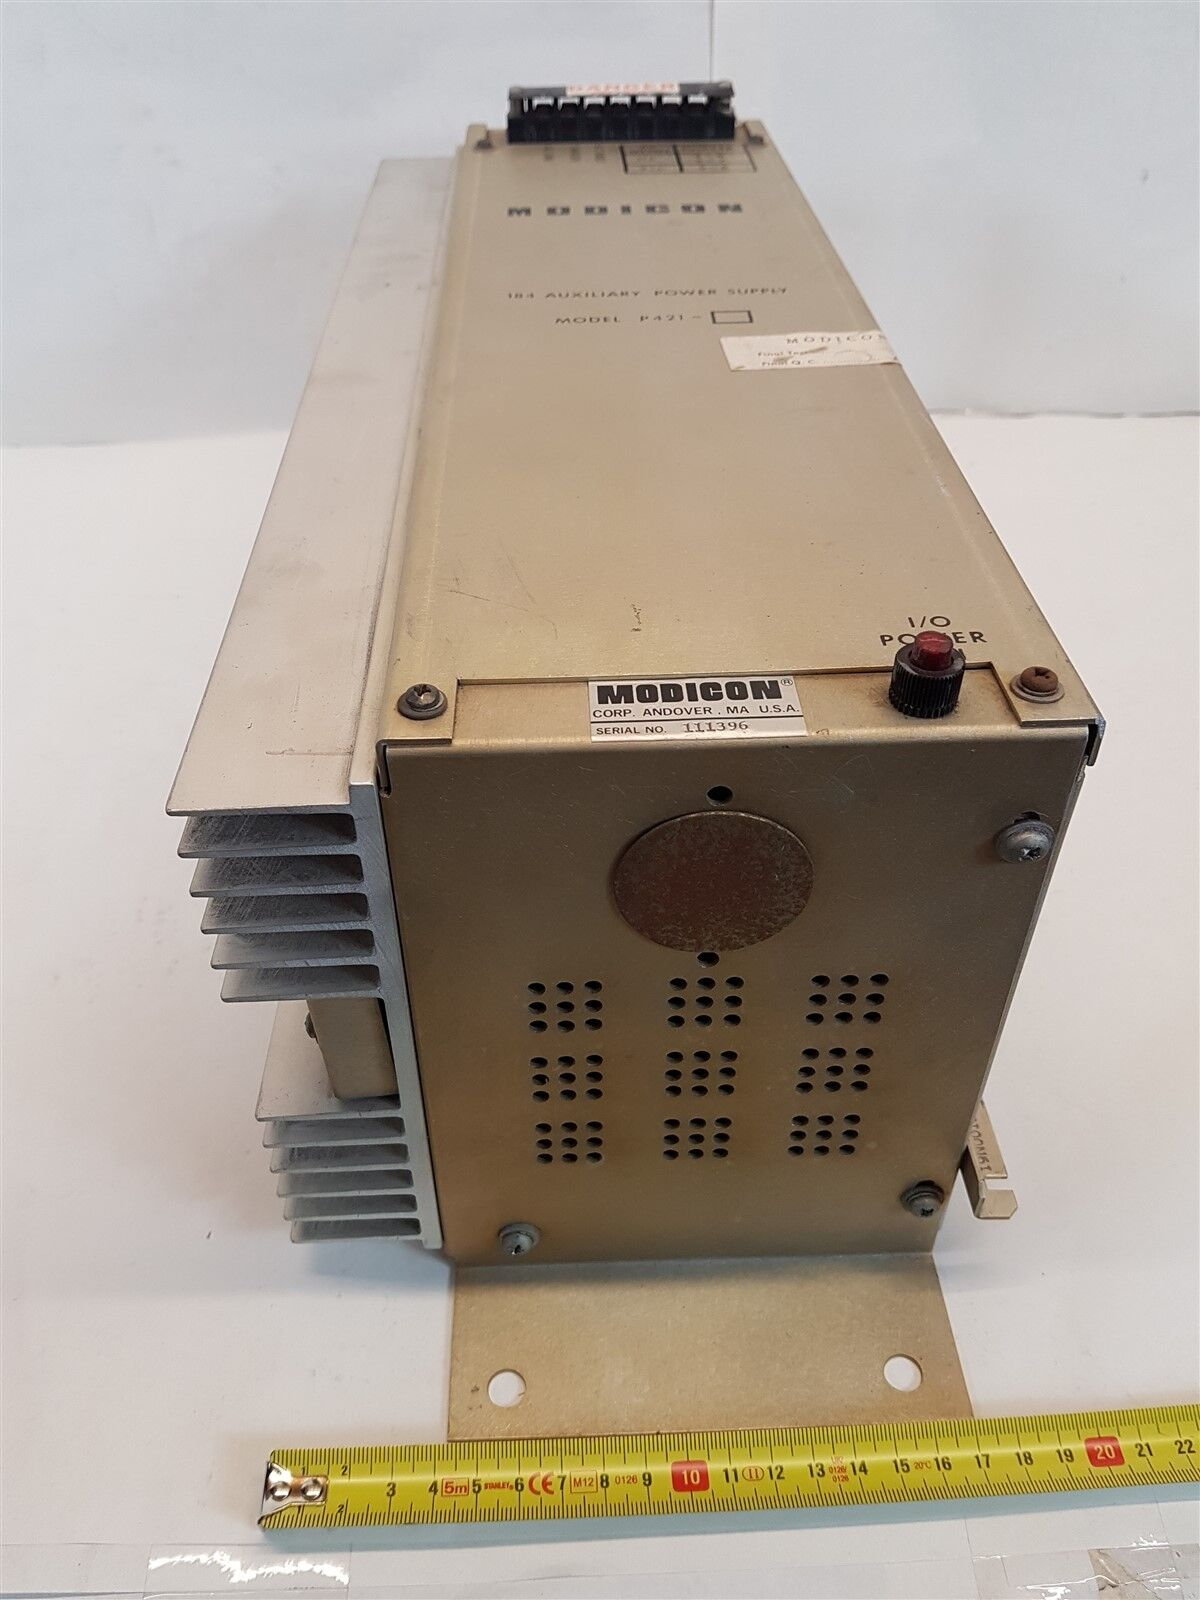 Remarkable Modicon 15A0069 184 Auxilliary Power Supply